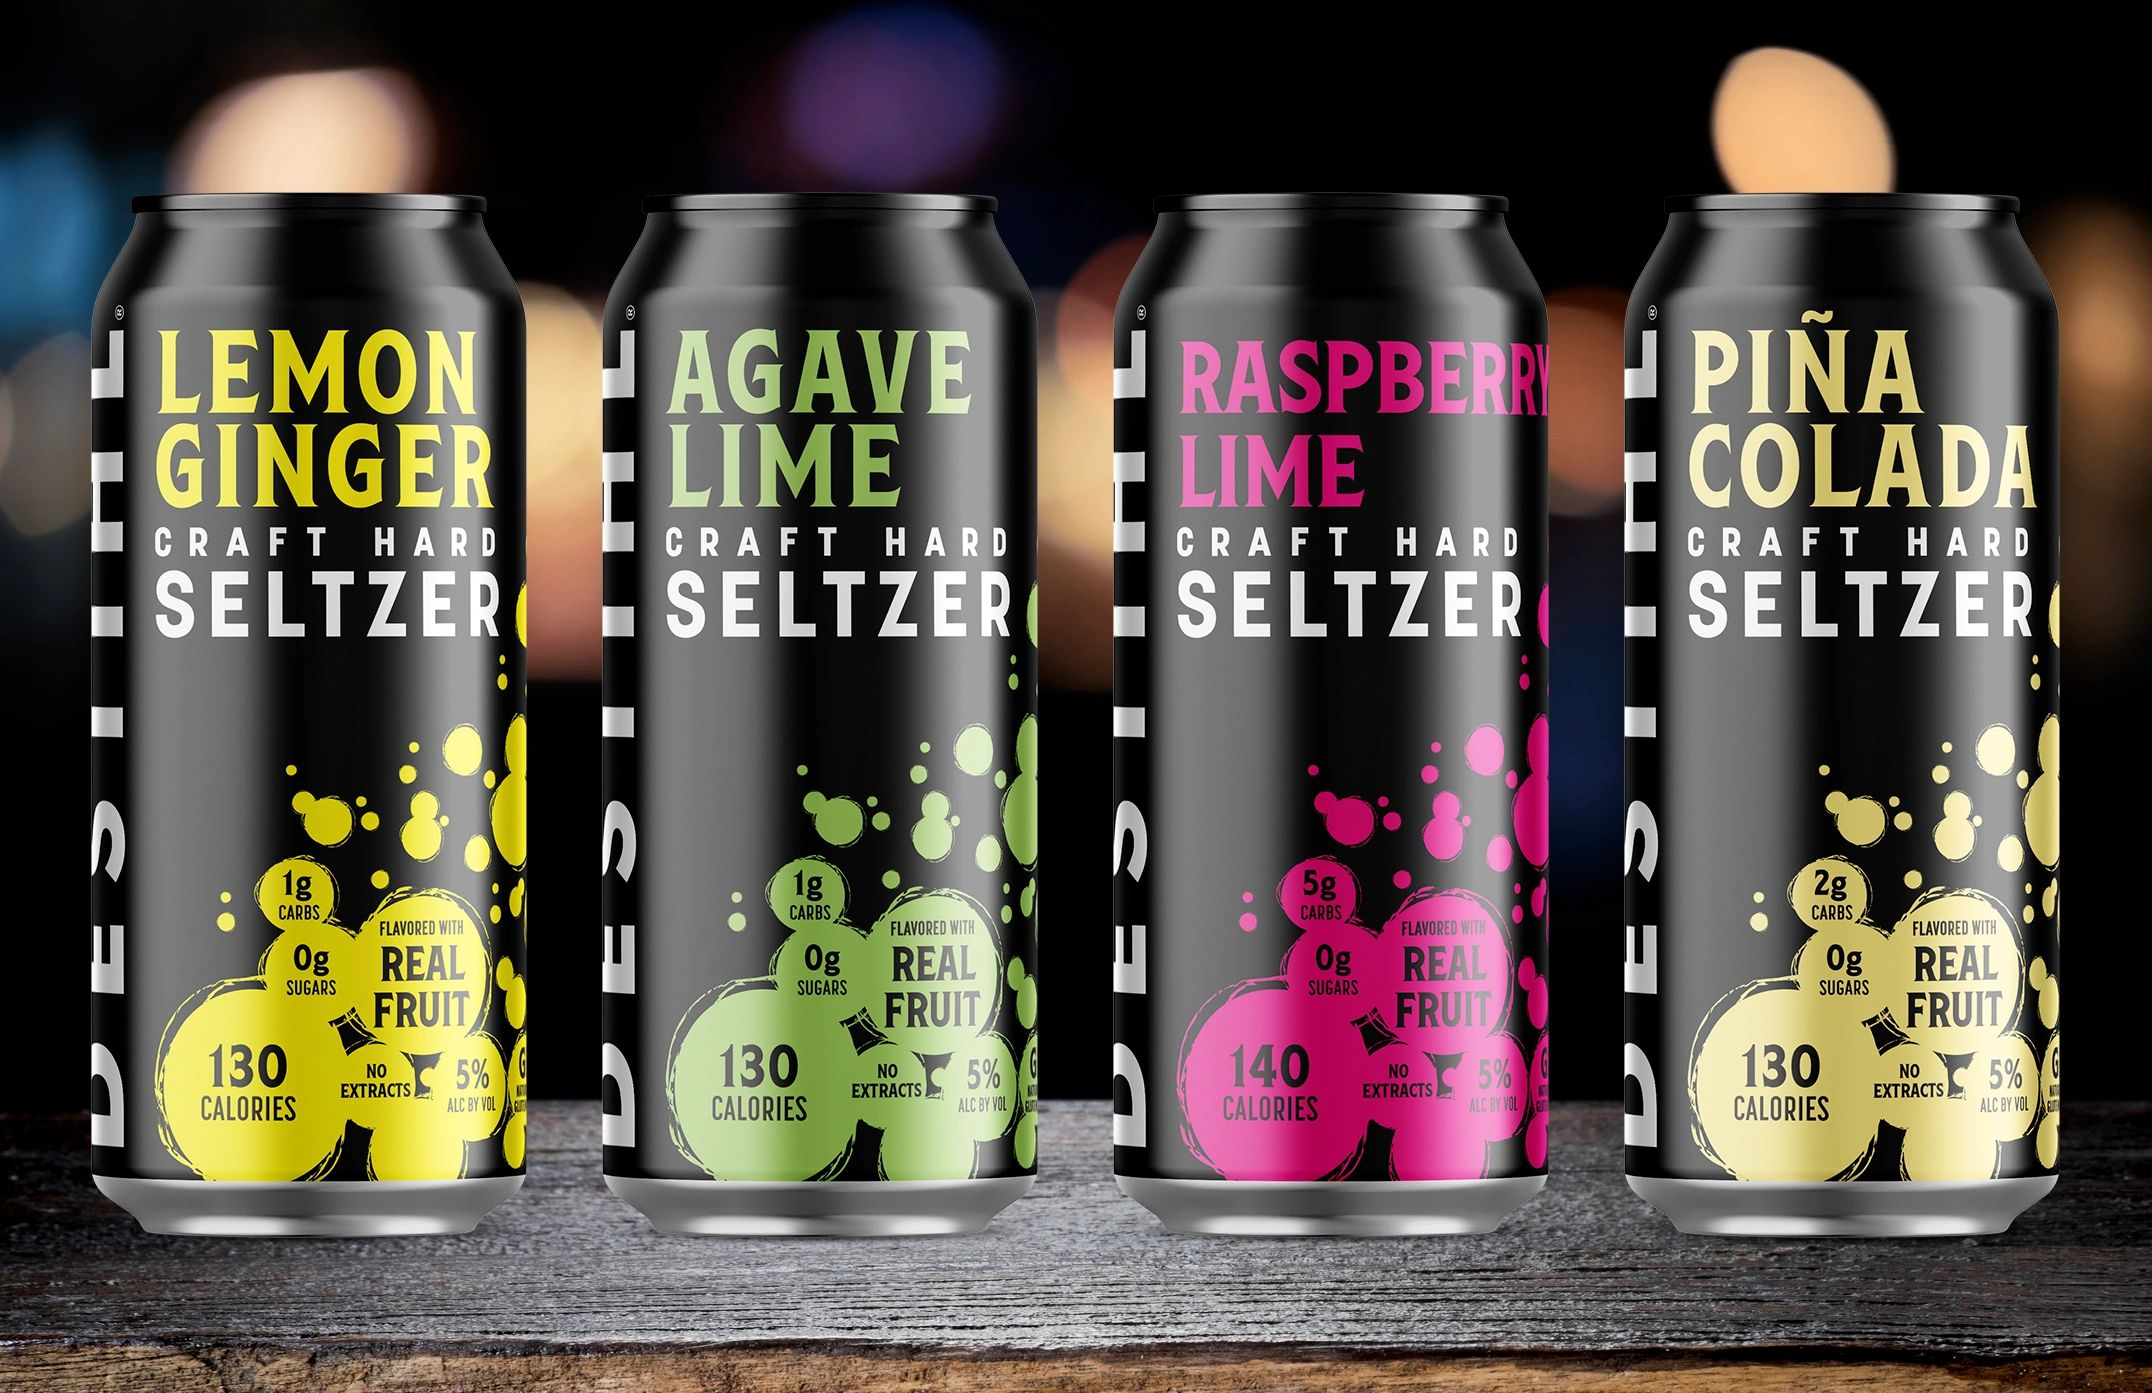 An image of DESTIHL Brewery's Craft Hard Seltzer cans.